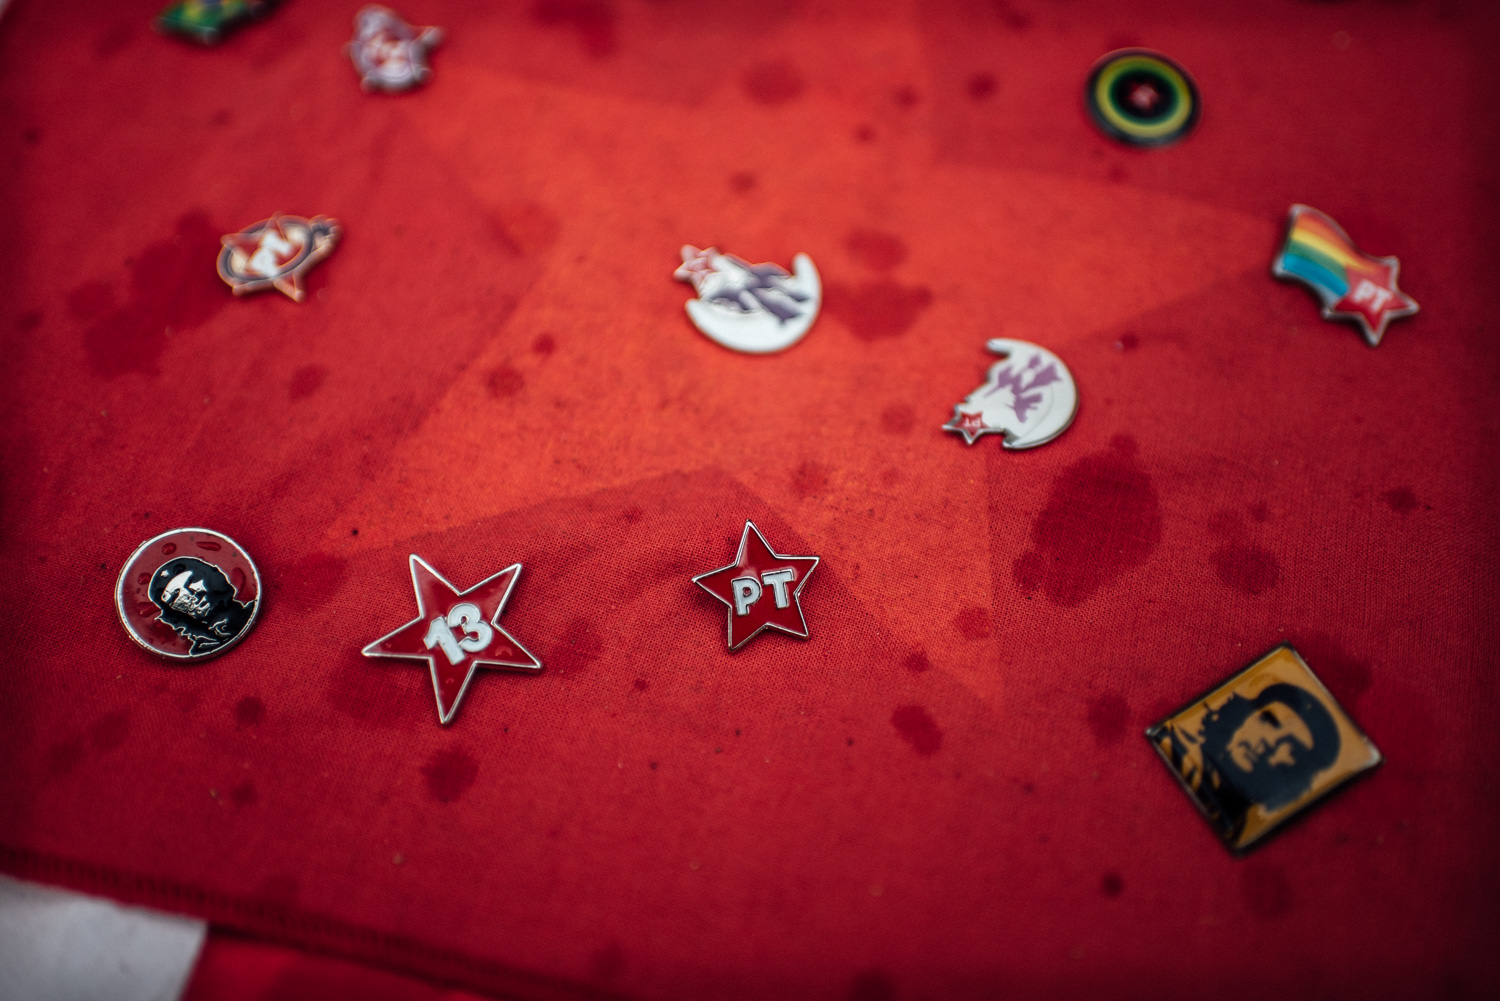 Assorted left wings pins for sale at a rally in support of Petrobras in Rio de Janeiro, Brazil. 03-13-2015.